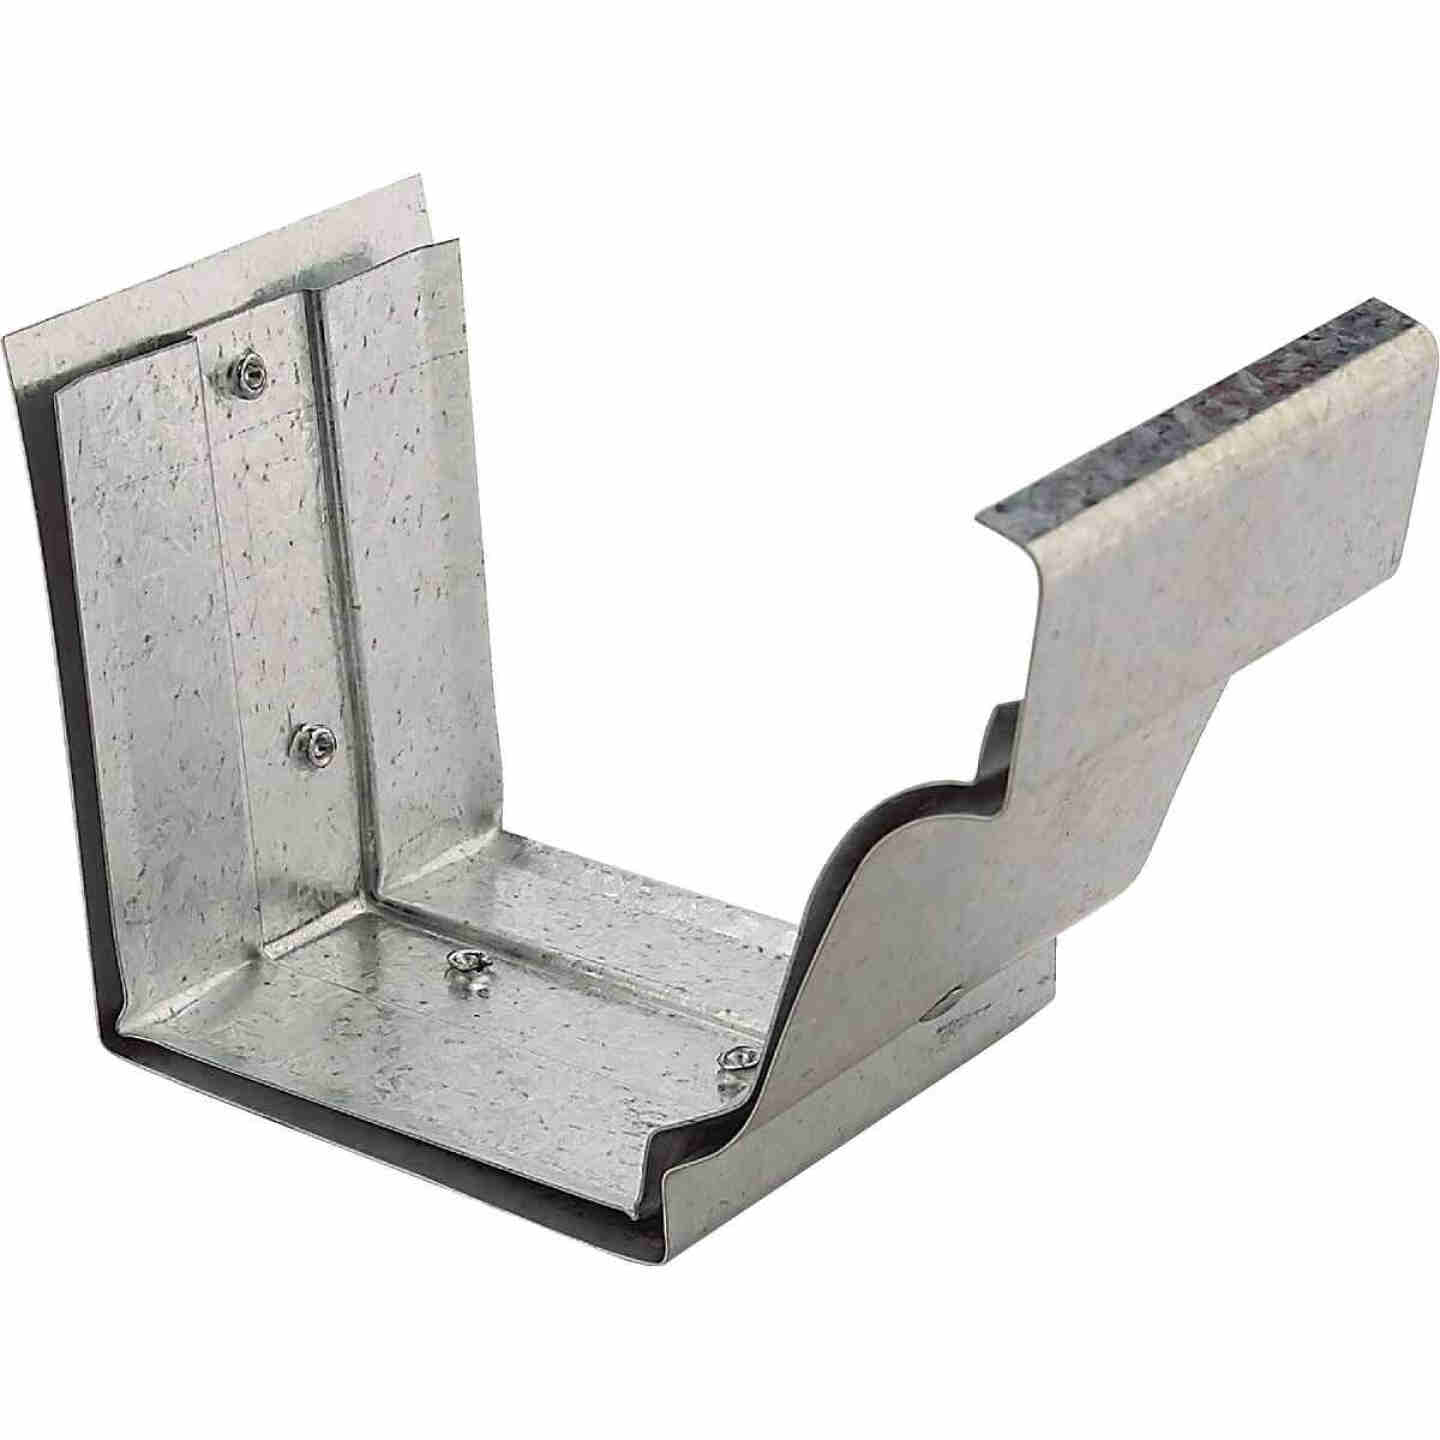 NorWesco 4 In. Galvanized Slip-Joint Gutter Connector Image 1